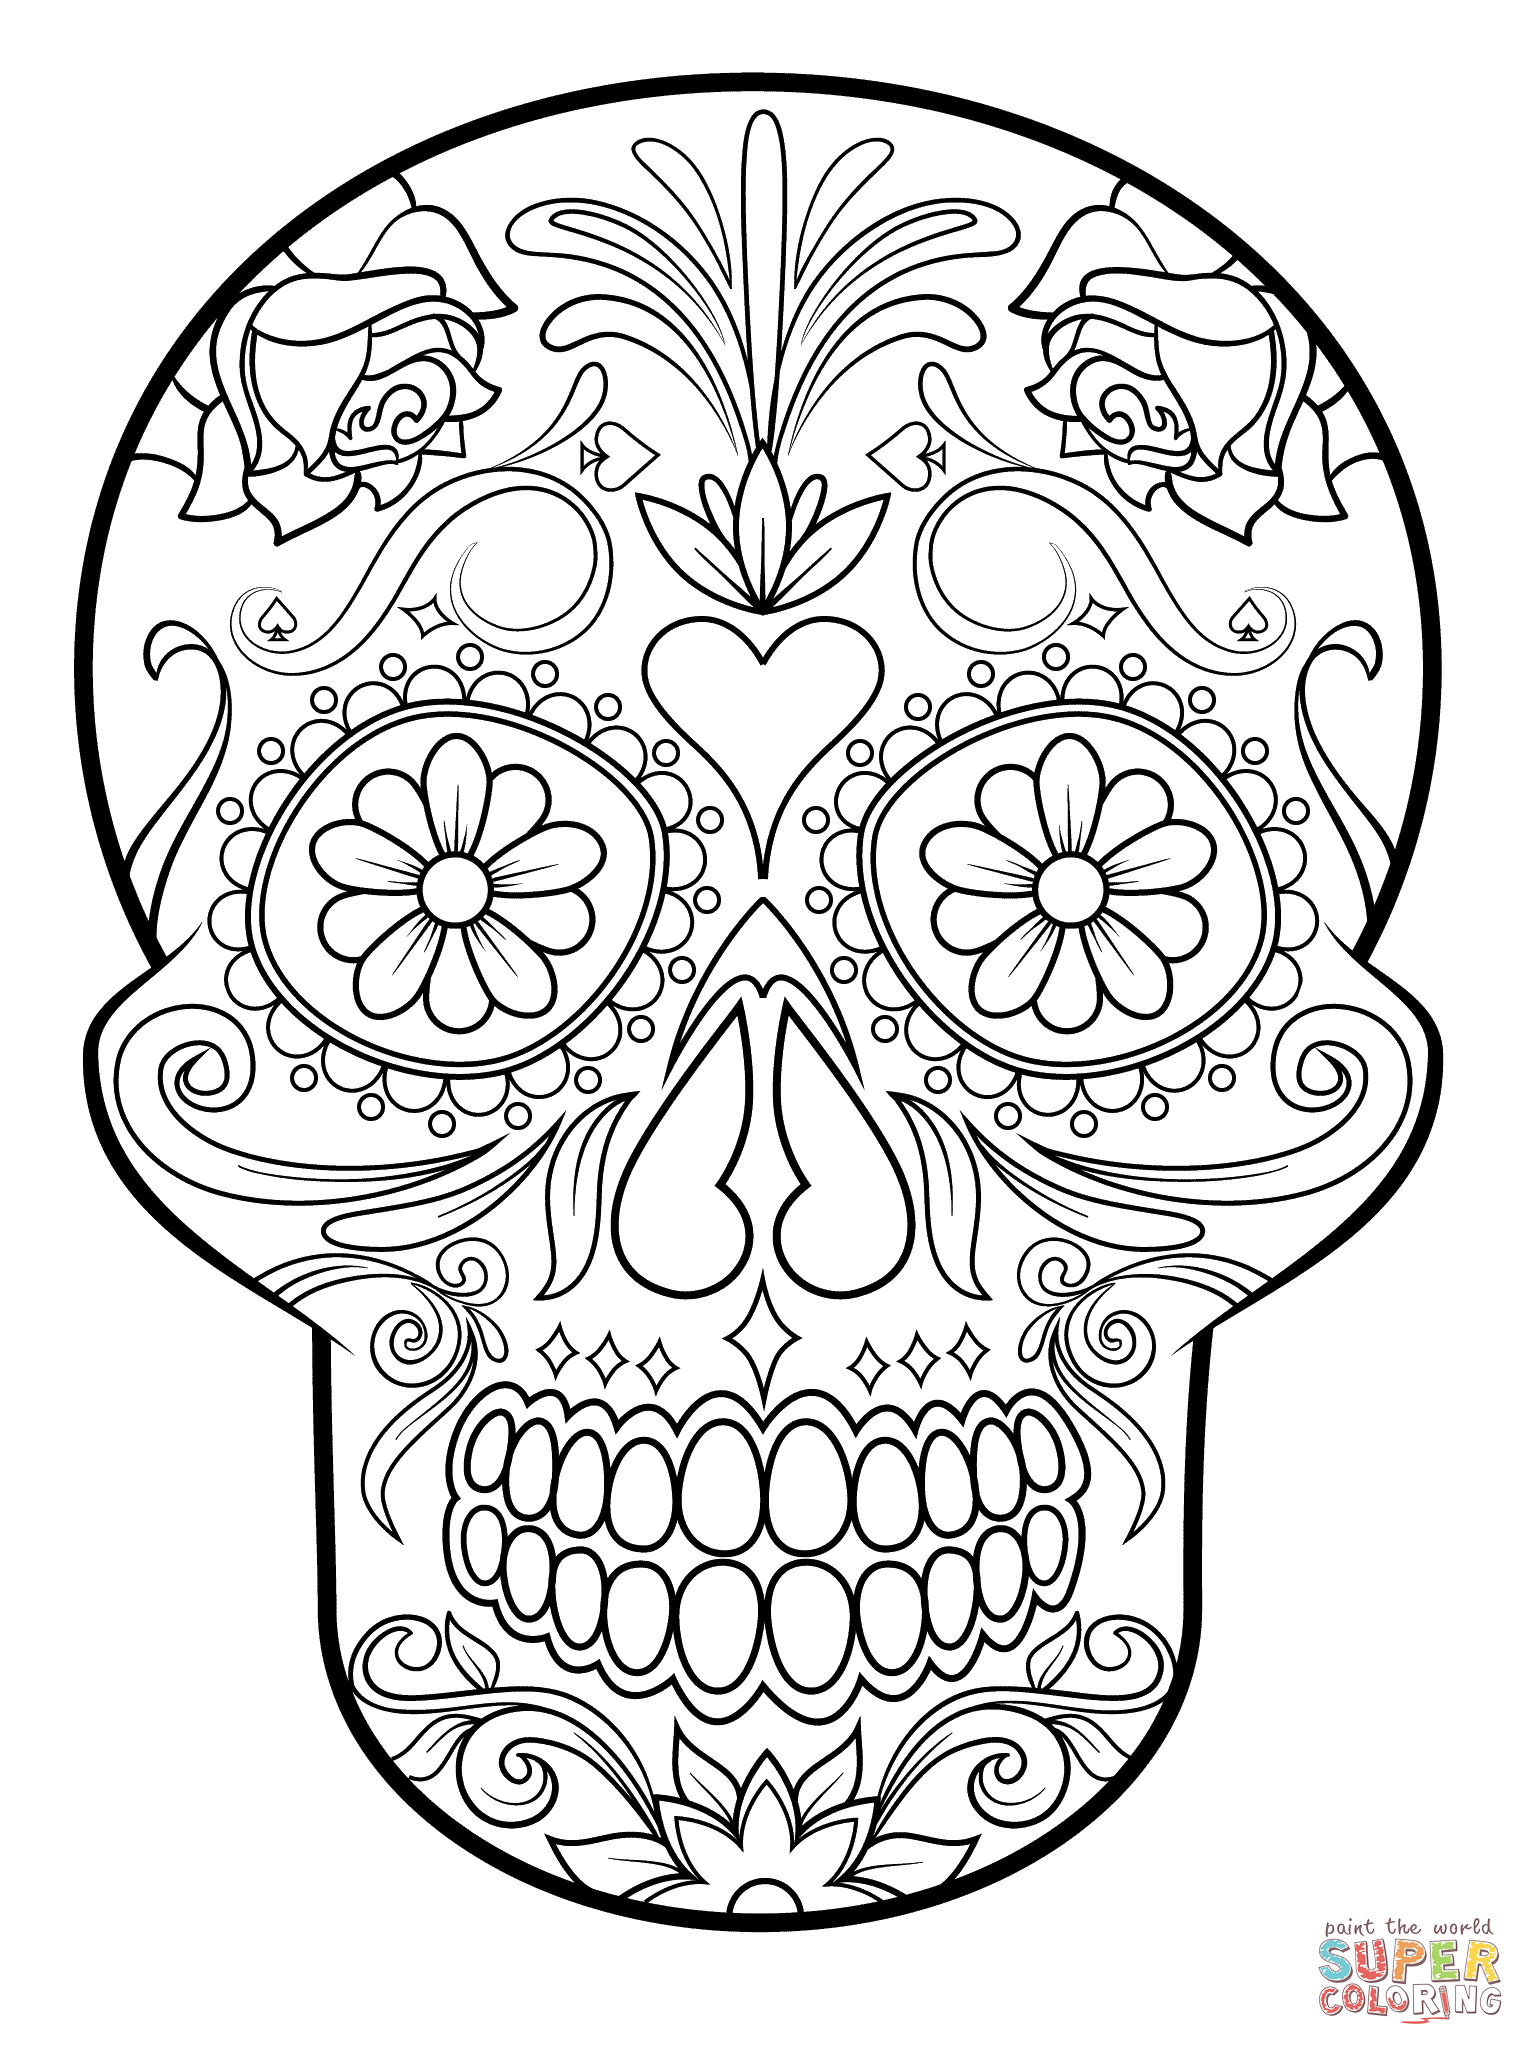 Sugar Skull Super Coloring Coloring Pages Skull Skull Coloring Pages Mandala Coloring Pages Halloween Coloring Pages